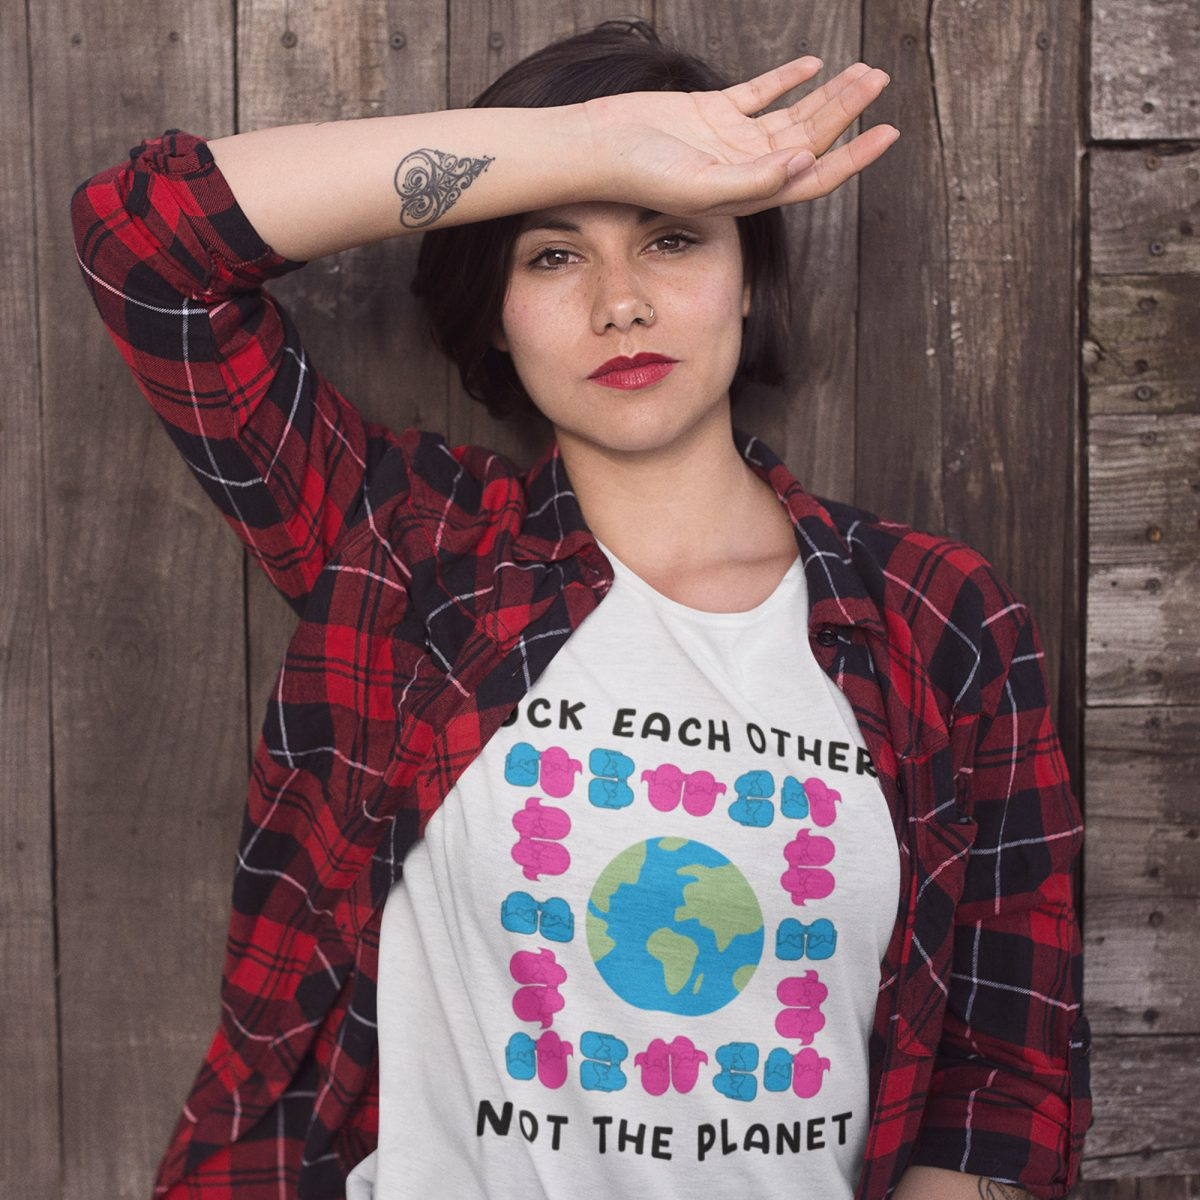 fuck-each-other-not-the-planet-filthy-BDSM-kinky-unisex-white-tshirt-5